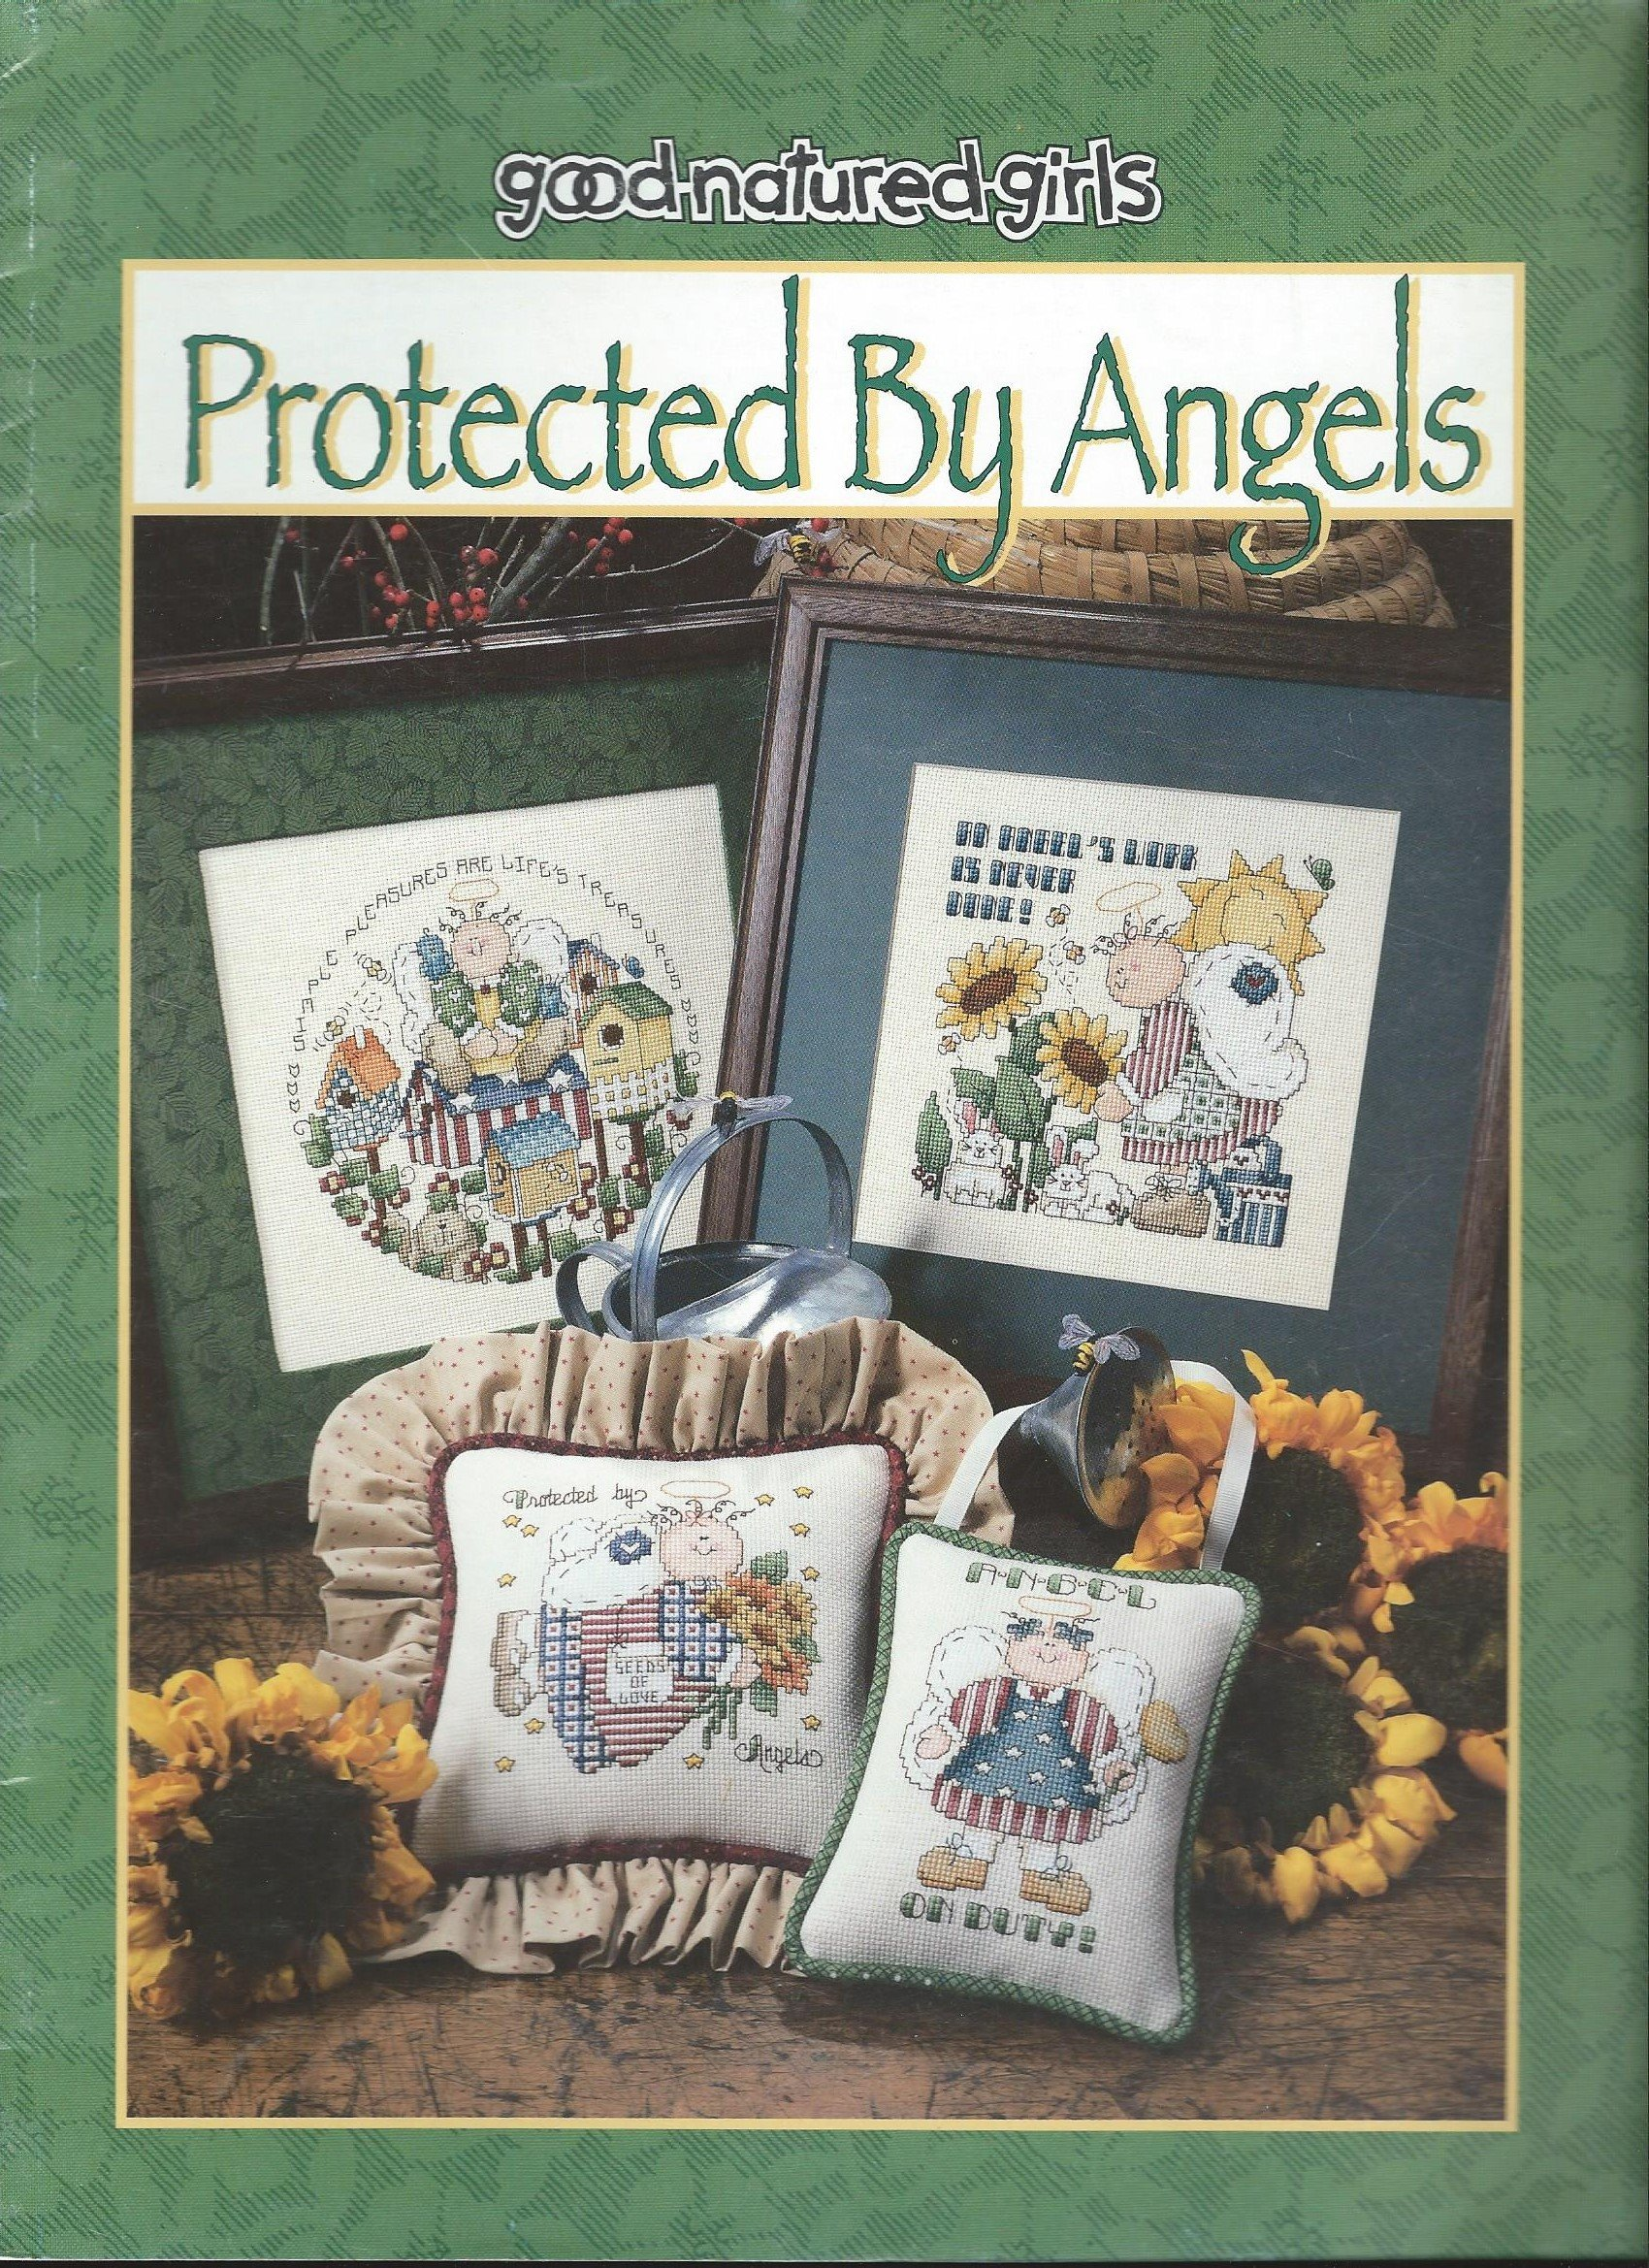 Protected By Angels, Cute Angel Patterns for Needlepoint, Cross Stitch and Embroidery Paperback – 1997 Good Natured Girls B000YCNMUO